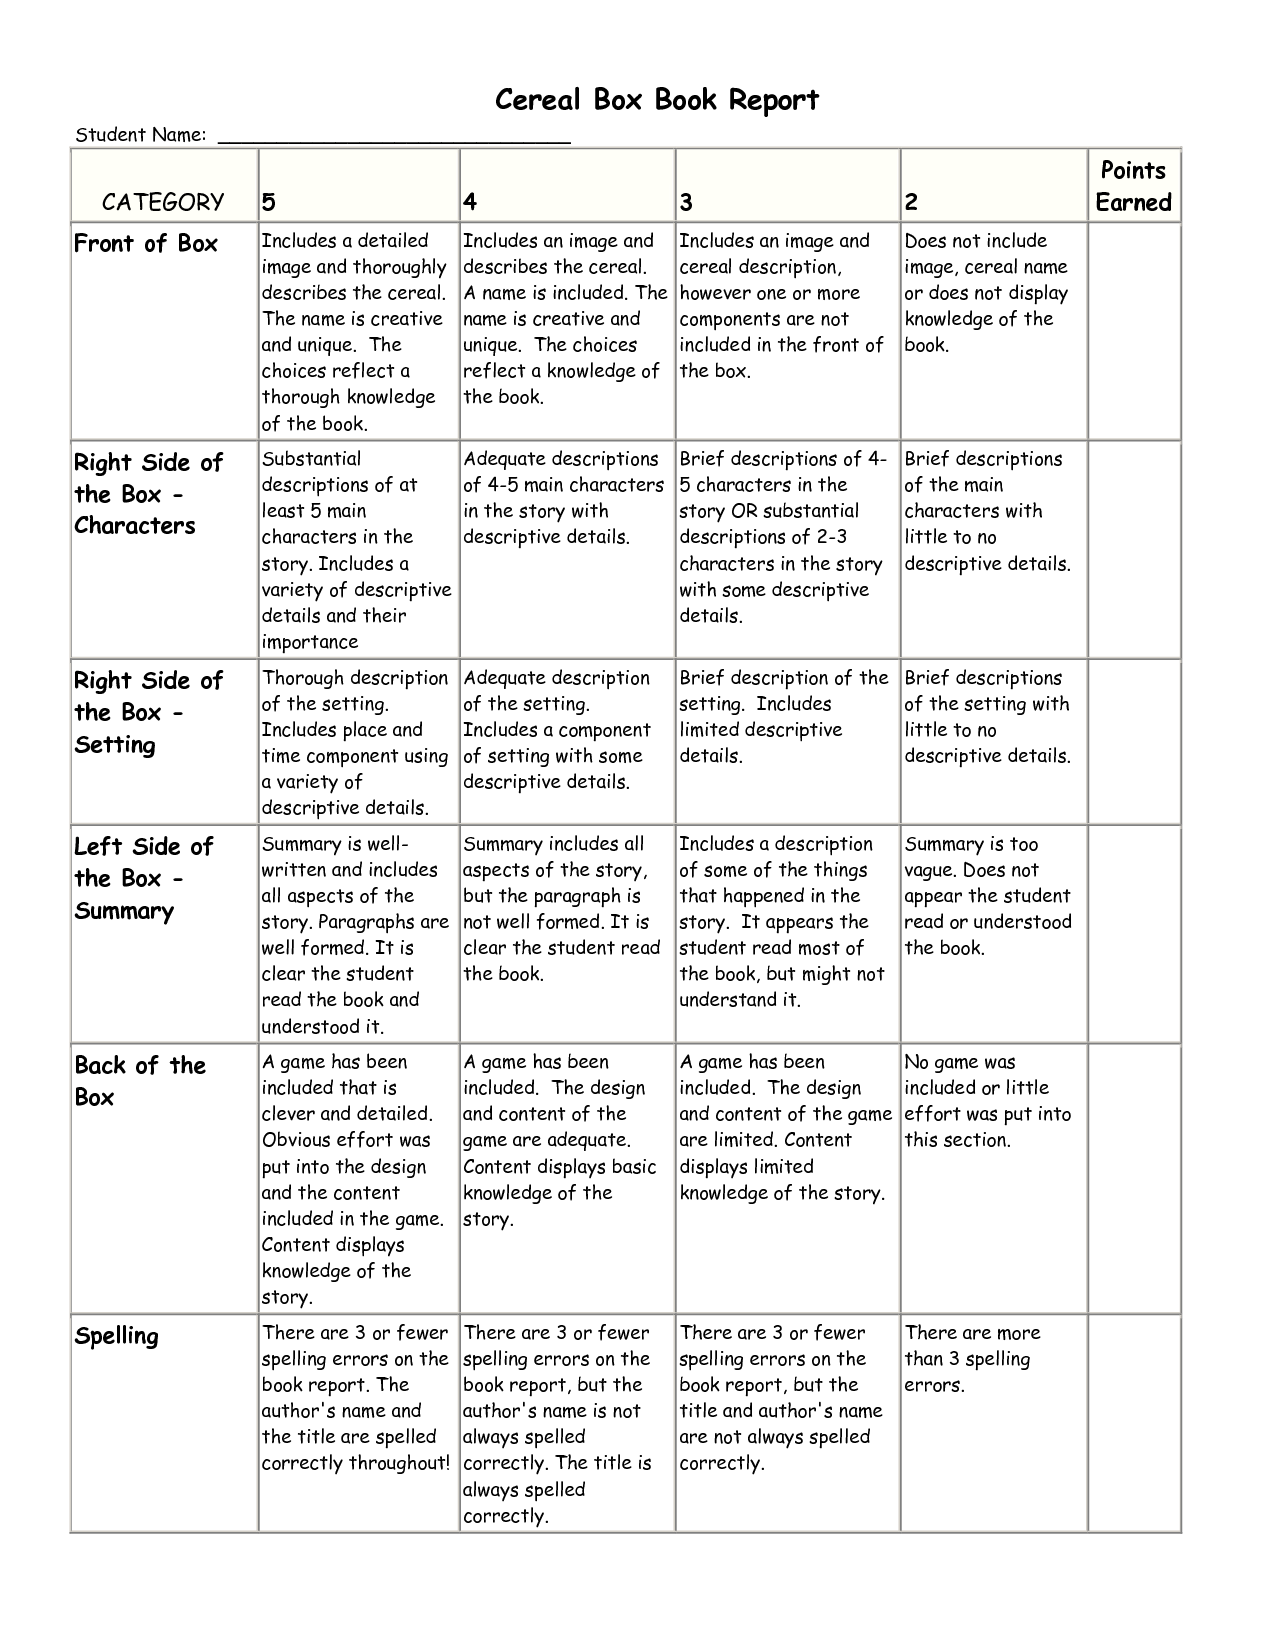 Rubric For Pizza Book Report